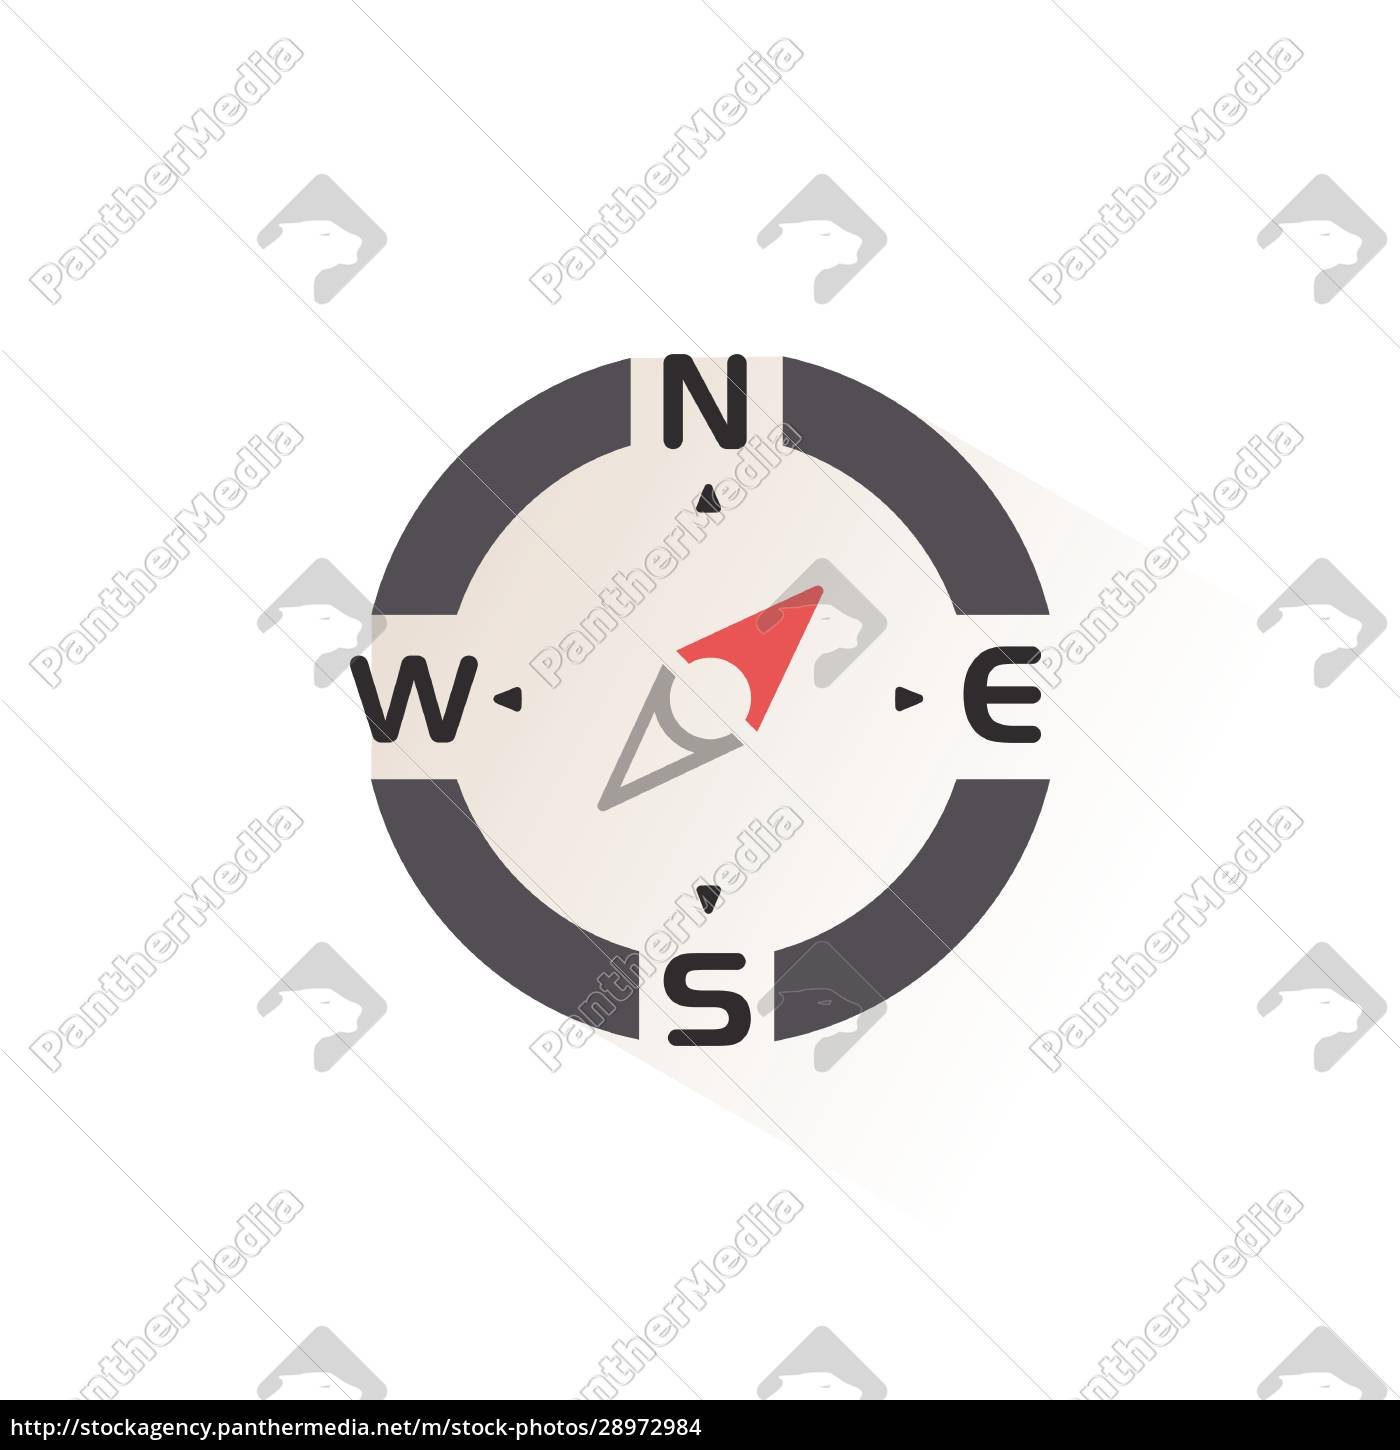 compass., north, east, direction., isolated, color - 28972984